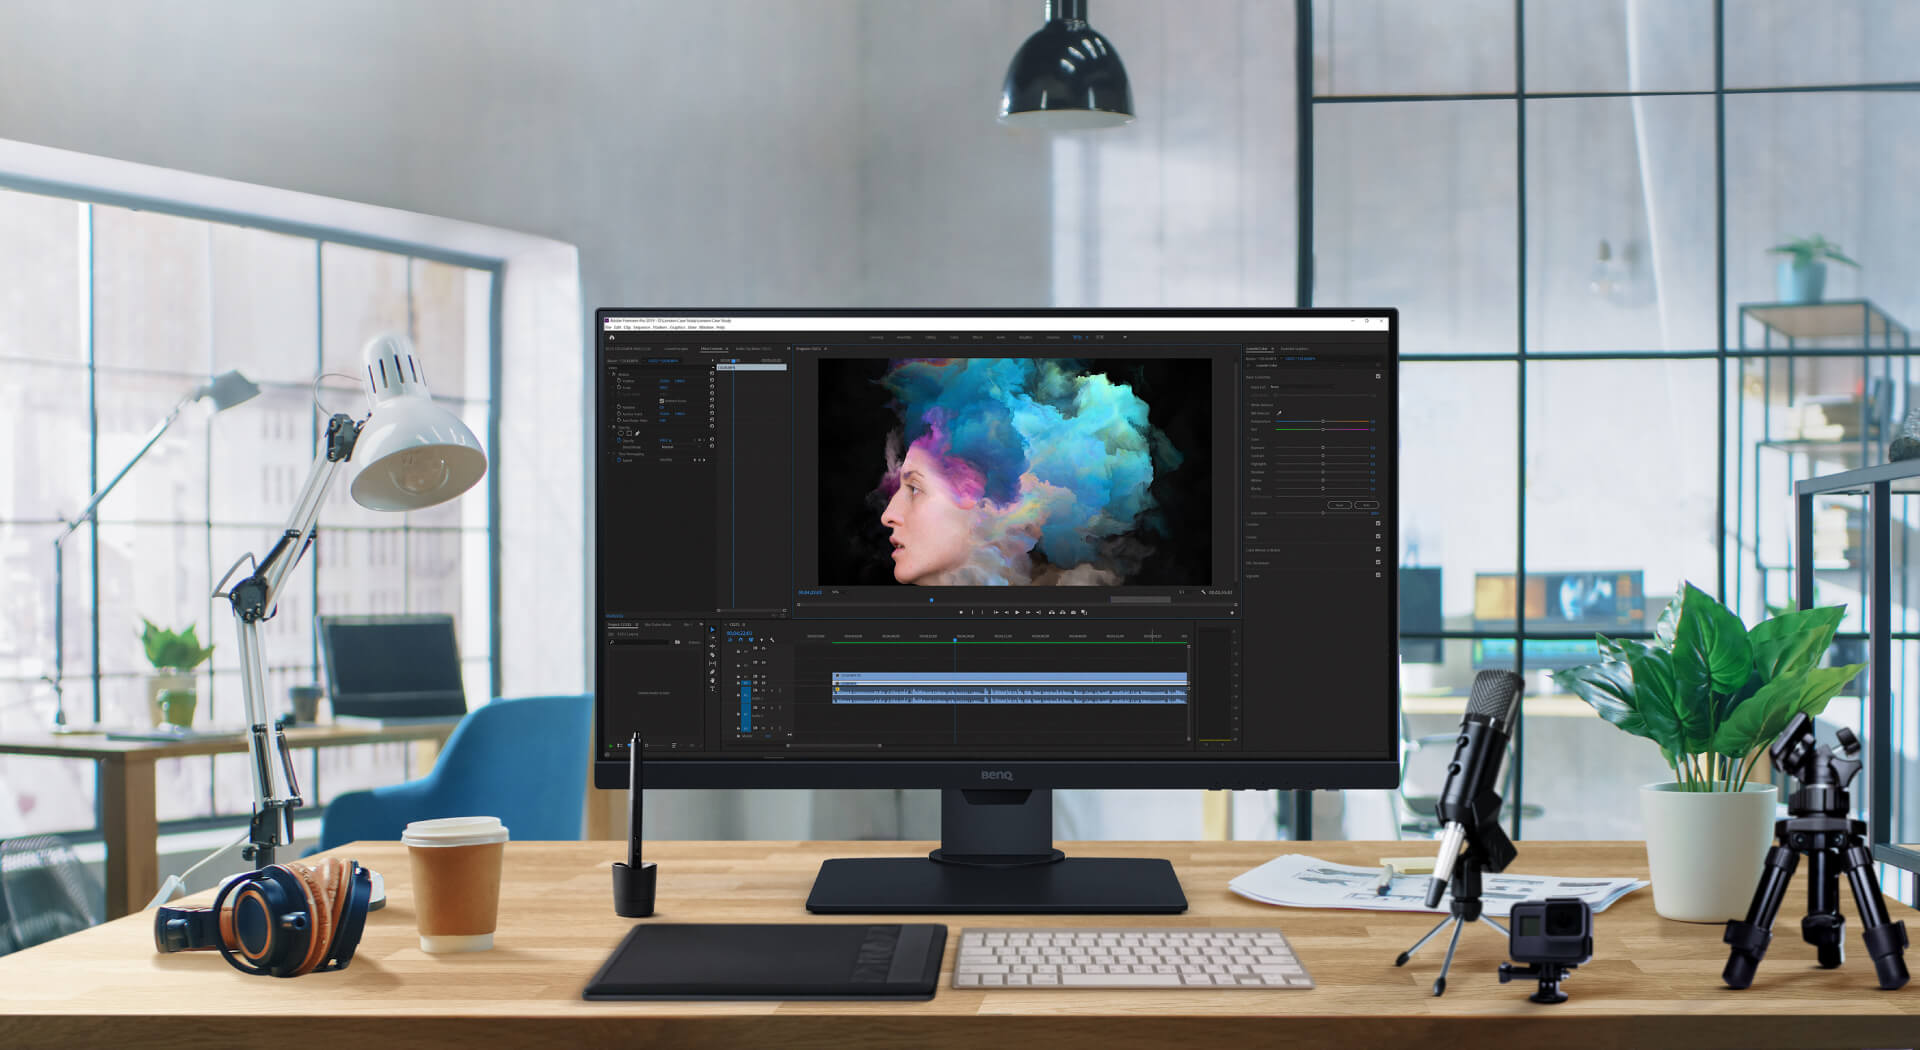 BenQ PD2705Q is HDR10-compatible for videographers to preview HDR video content during the editing process, ensuring desirable outcomes for their final output.